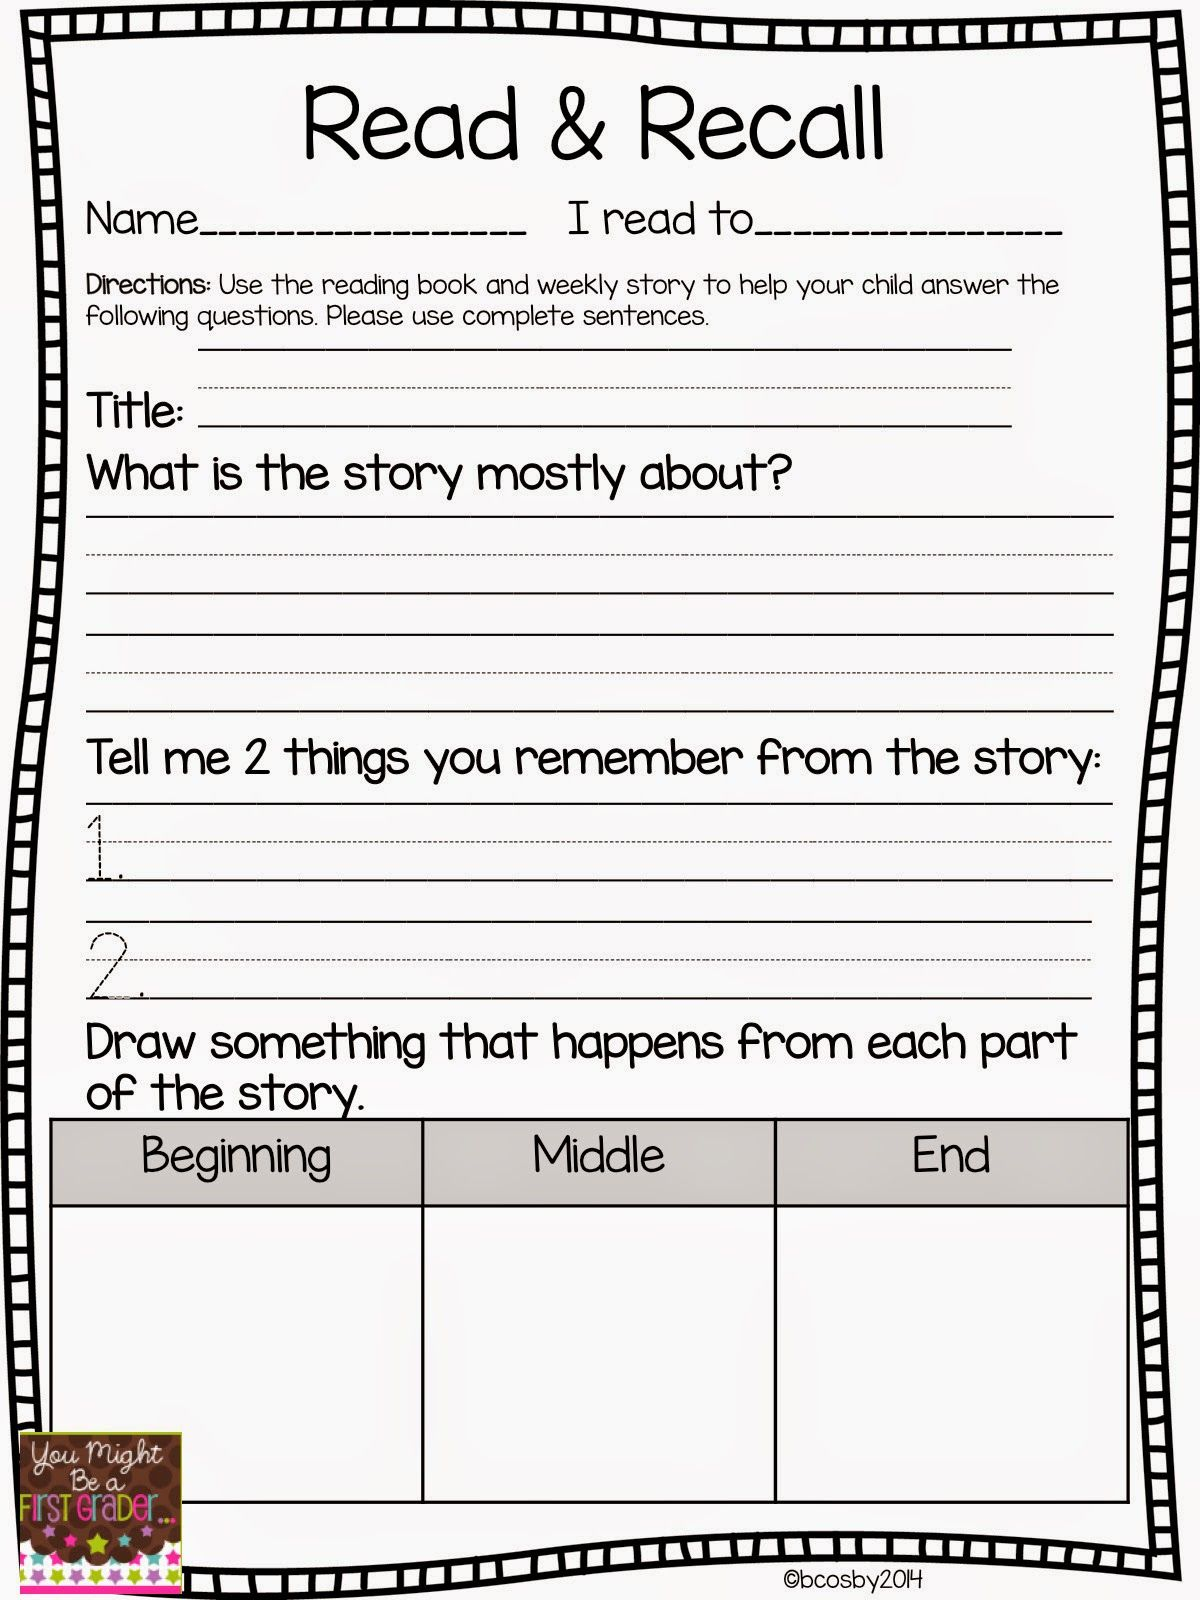 Reading Comprehension - Classroom Freebies   First grade reading [ 1600 x 1200 Pixel ]